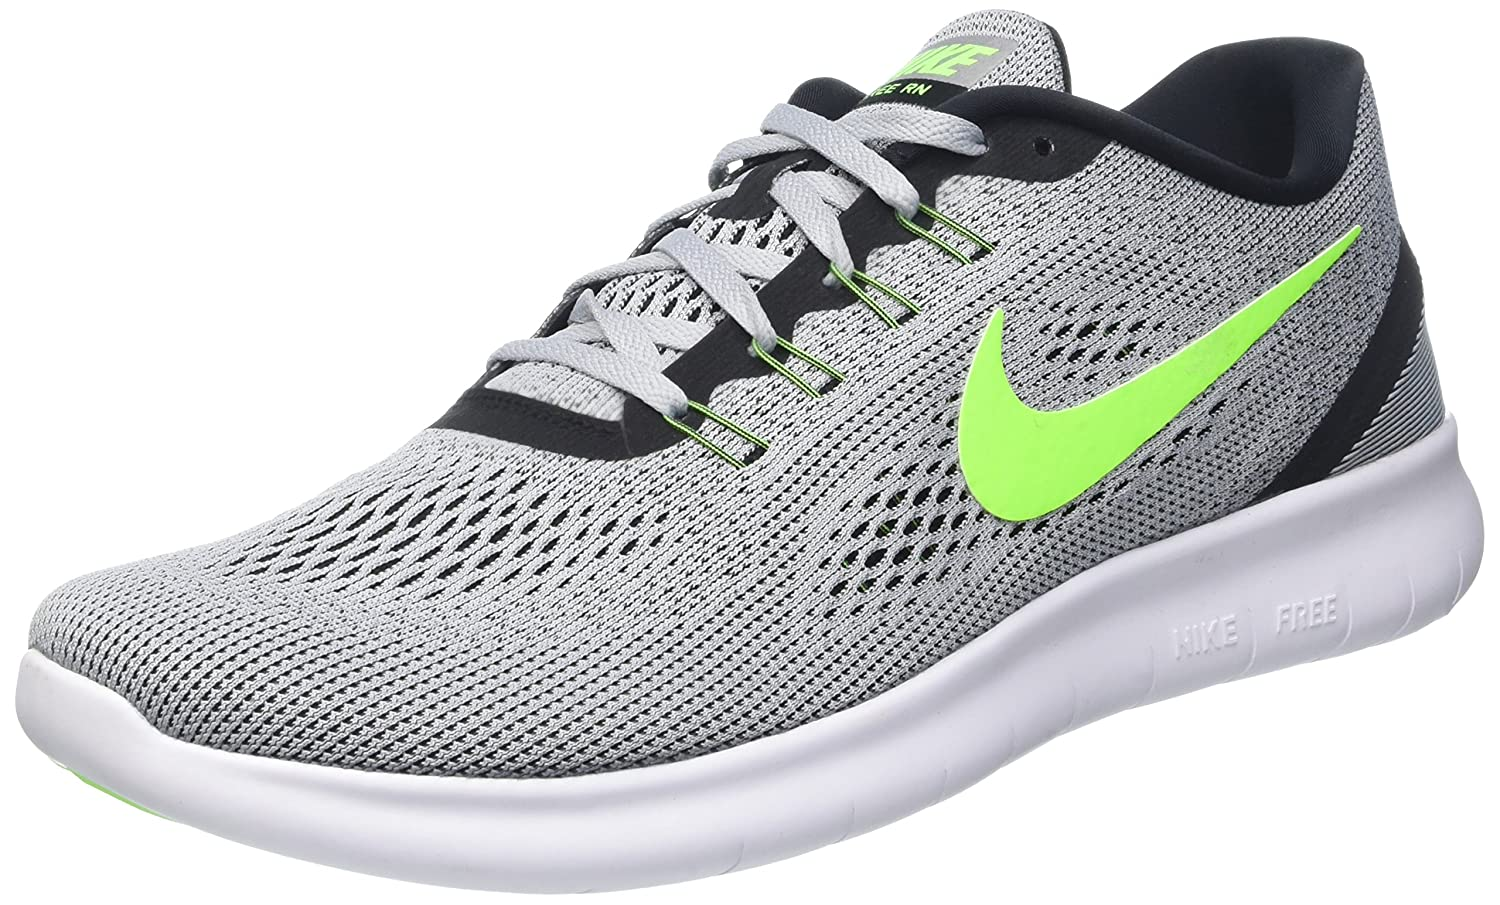 NIKE Men's Free RN Running Shoe B0147SLRB6 12 M US|Pure Platinum/Electric Green/Anthracite